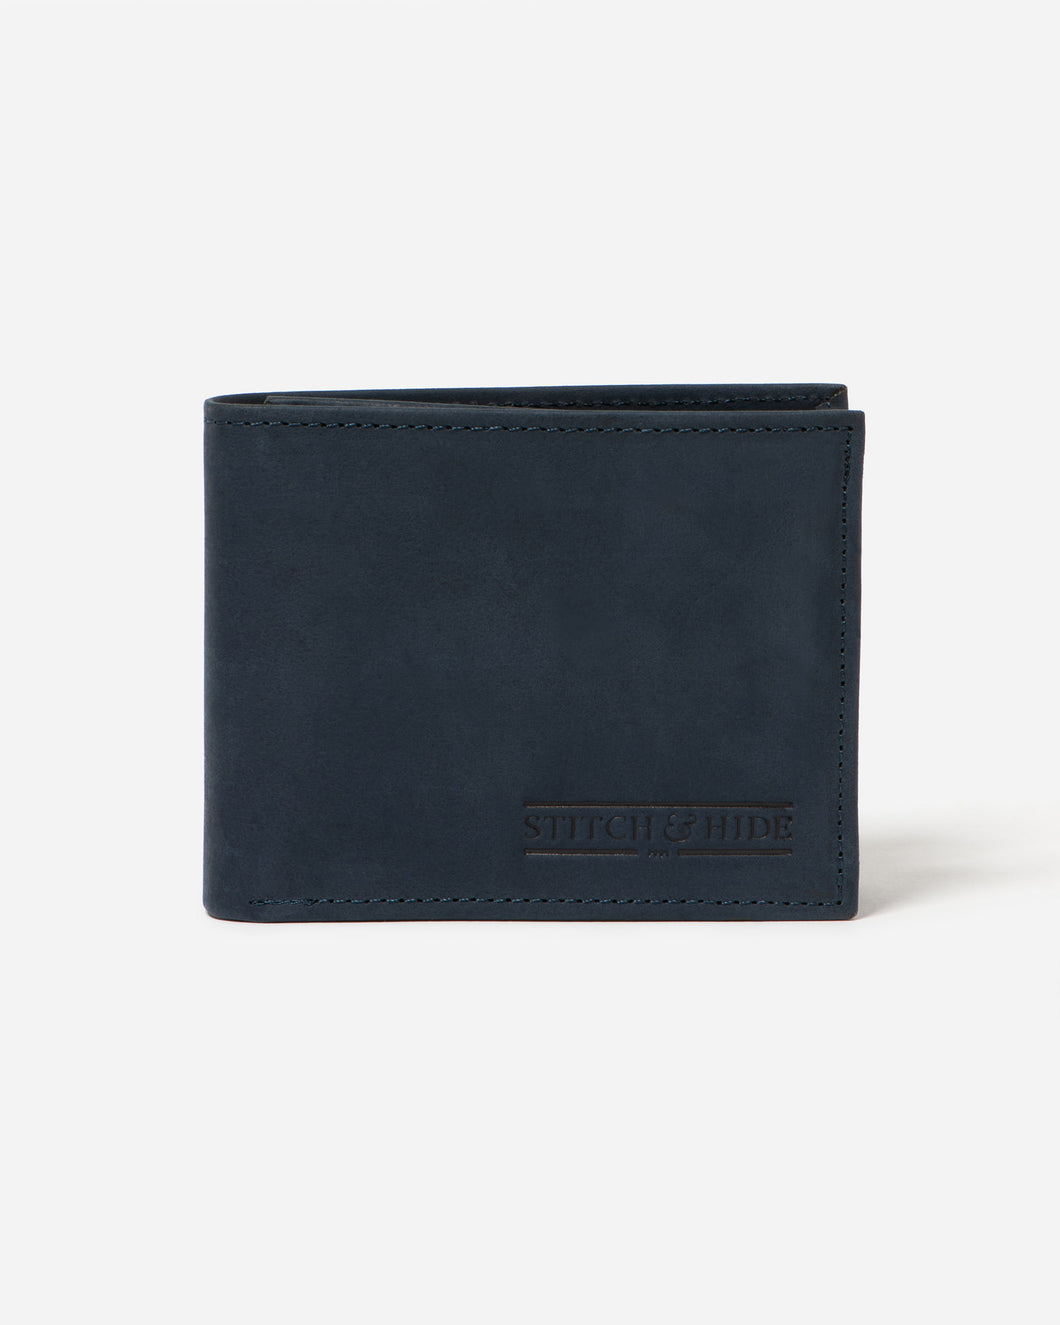 STITCH & HIDE - CASPER WALLET NAVY